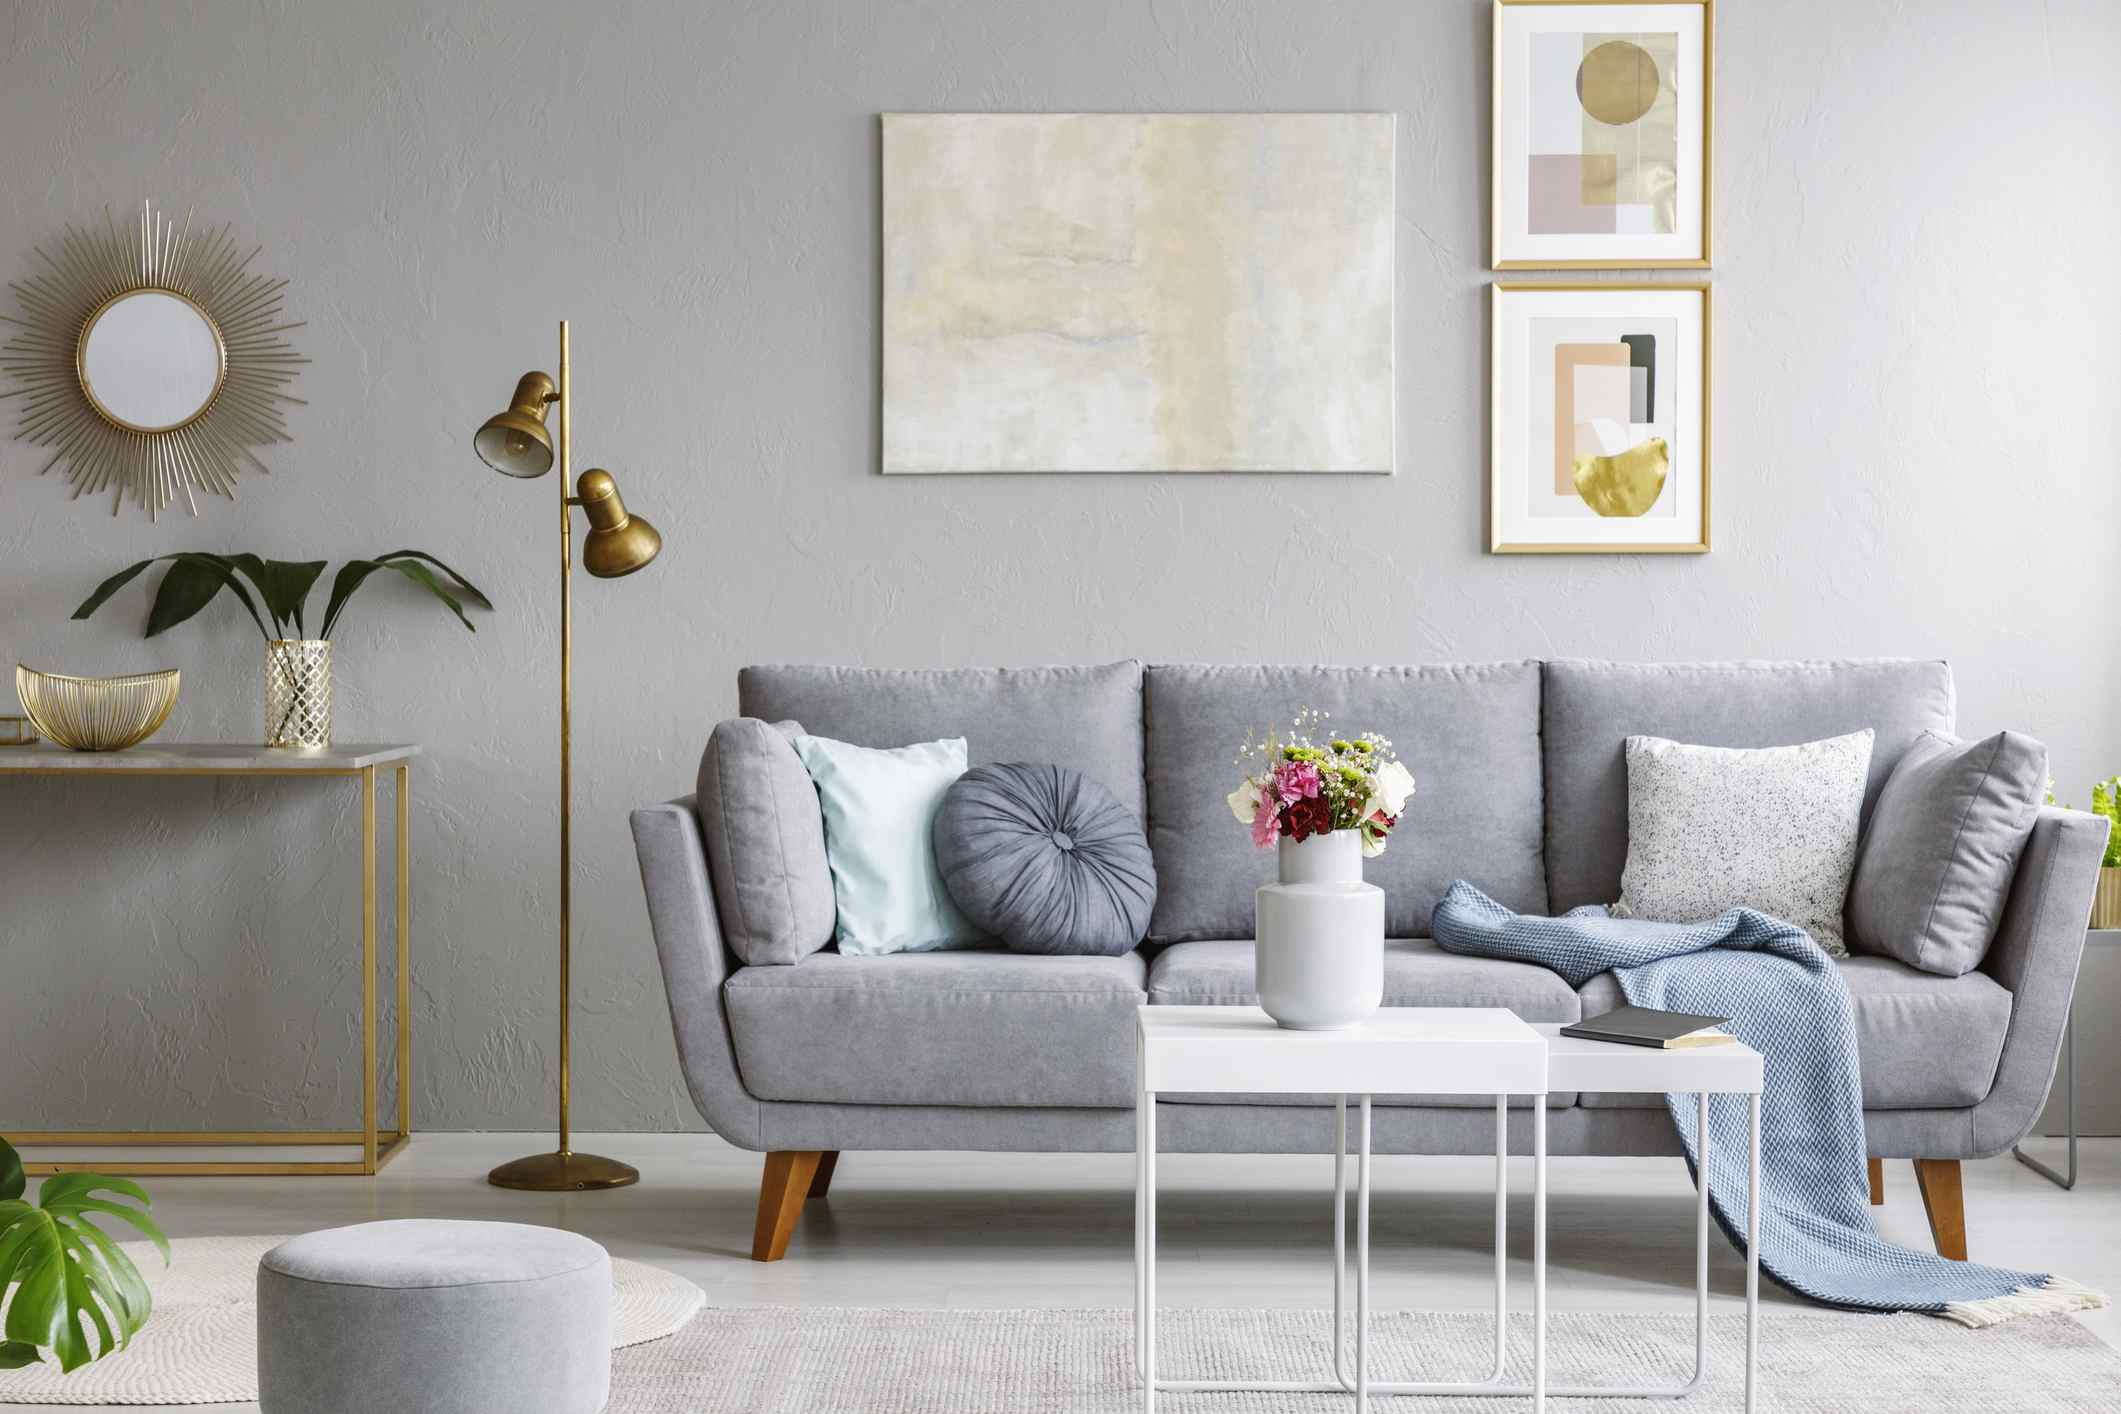 Gold mirror above shelf with plant in grey living room interior with sofa and flowers on table. Real photo